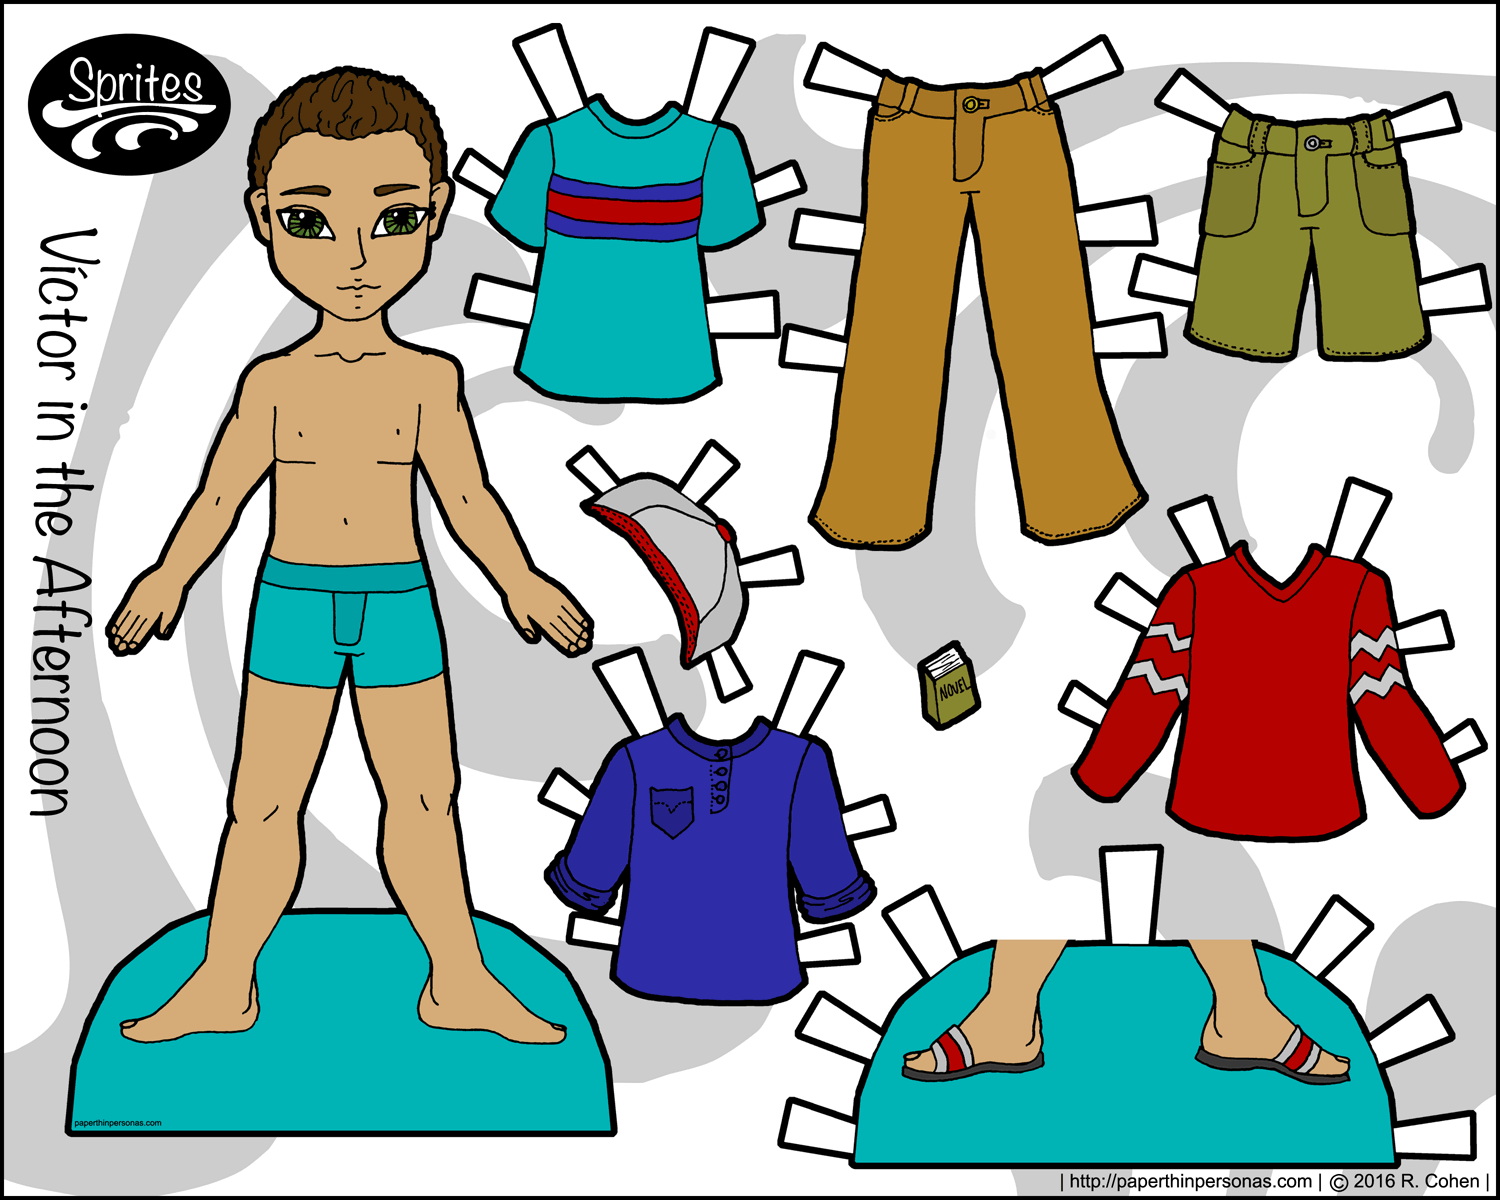 Dynamite image intended for paper doll clothes printable